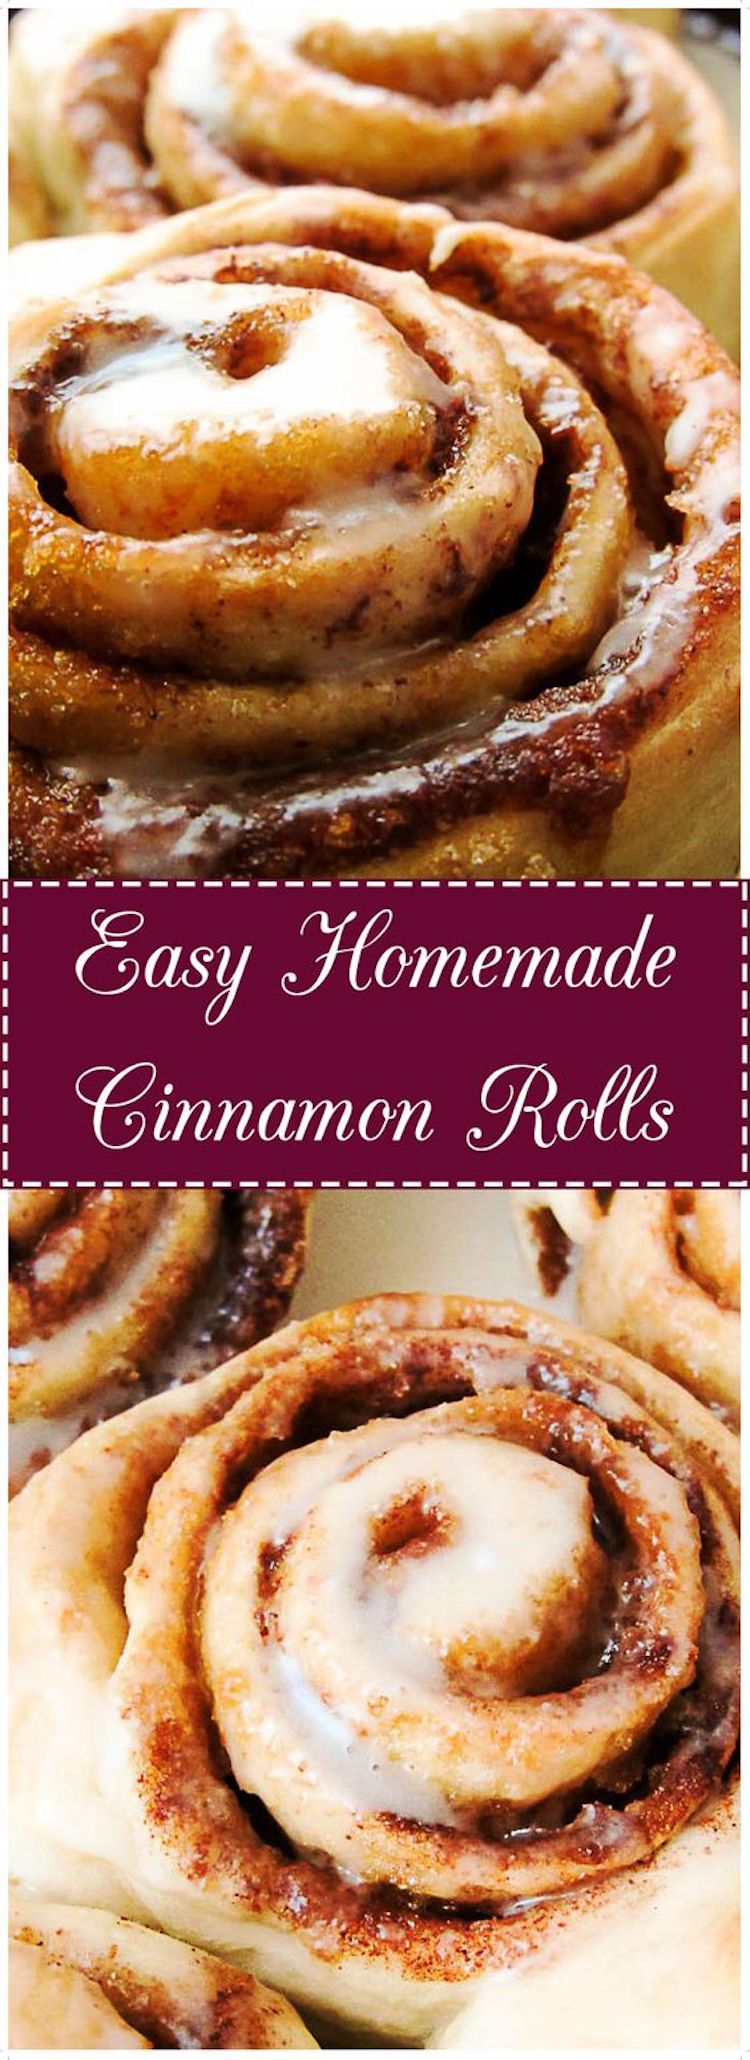 Easy Home Made Cinnamon Roll Recipe: Who doesn't like a warm, gooey cinnamon roll fresh from the oven? You do? Well, this is just the one for you. Continue reading this recipe on BerlysKitchen.com.